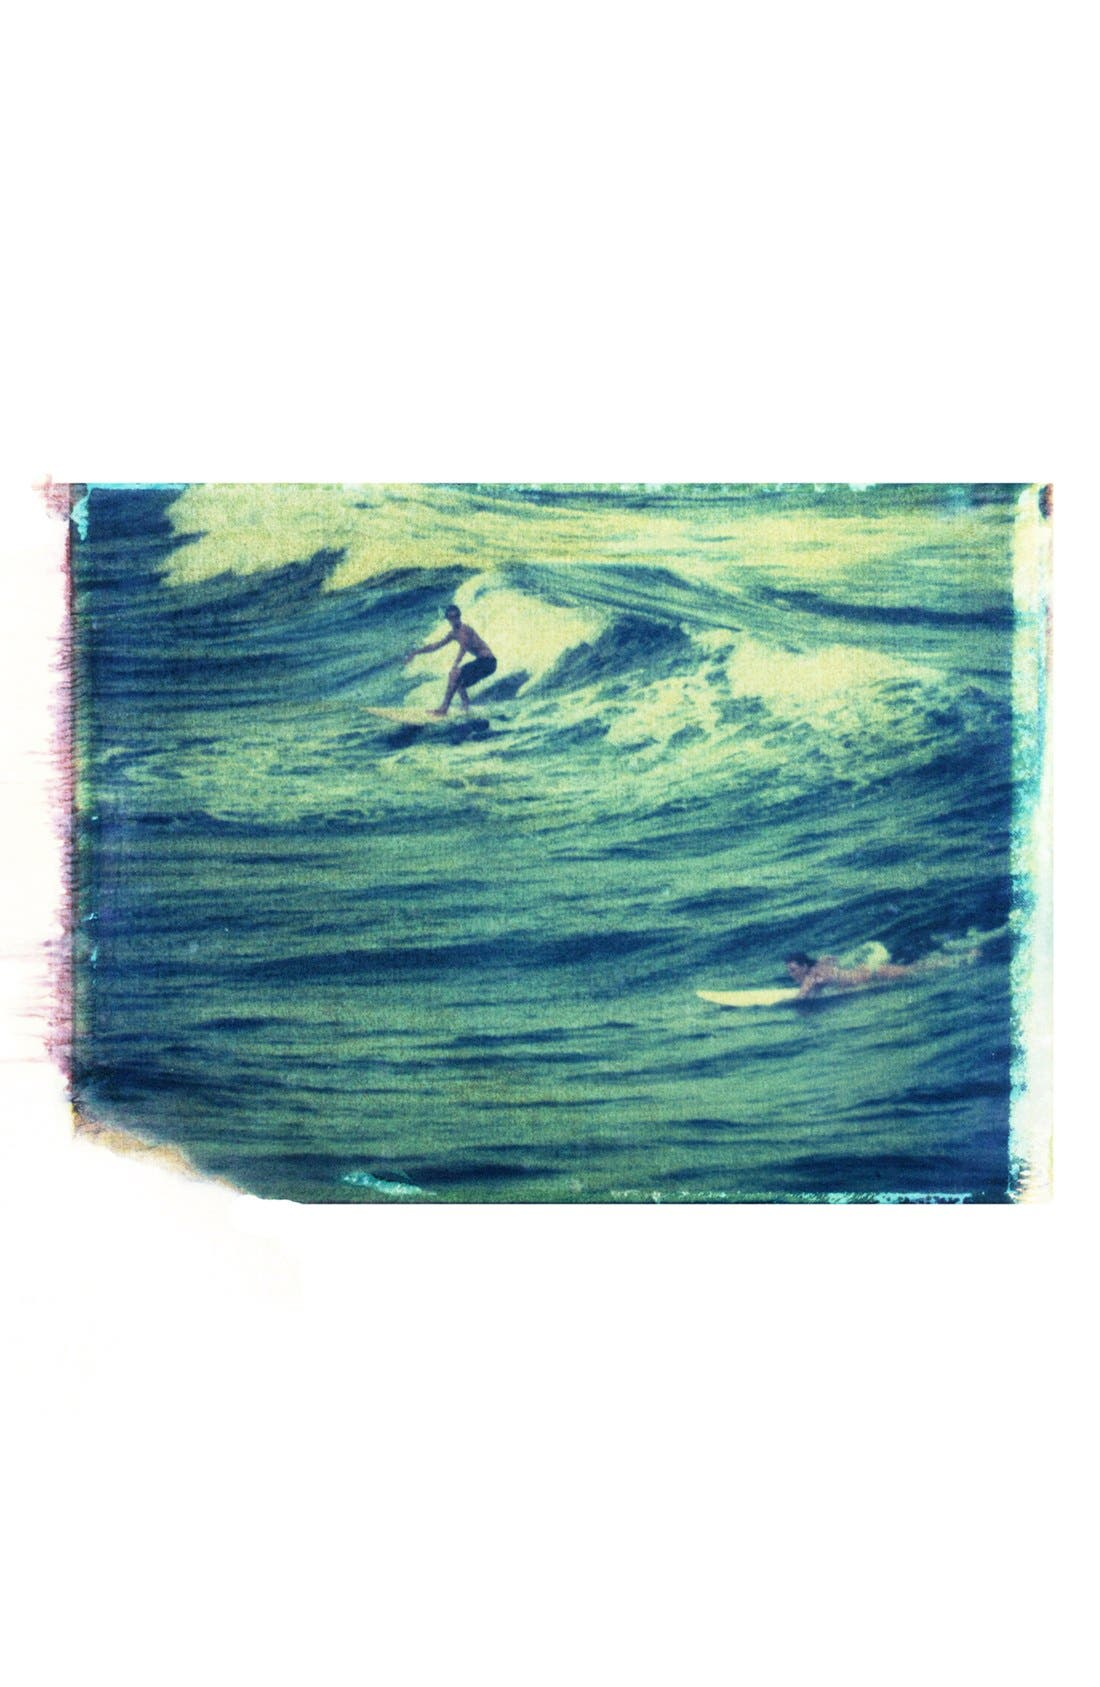 Alternate Image 1 Selected - She Hit Pause Studios 'Surfers' Wall Art